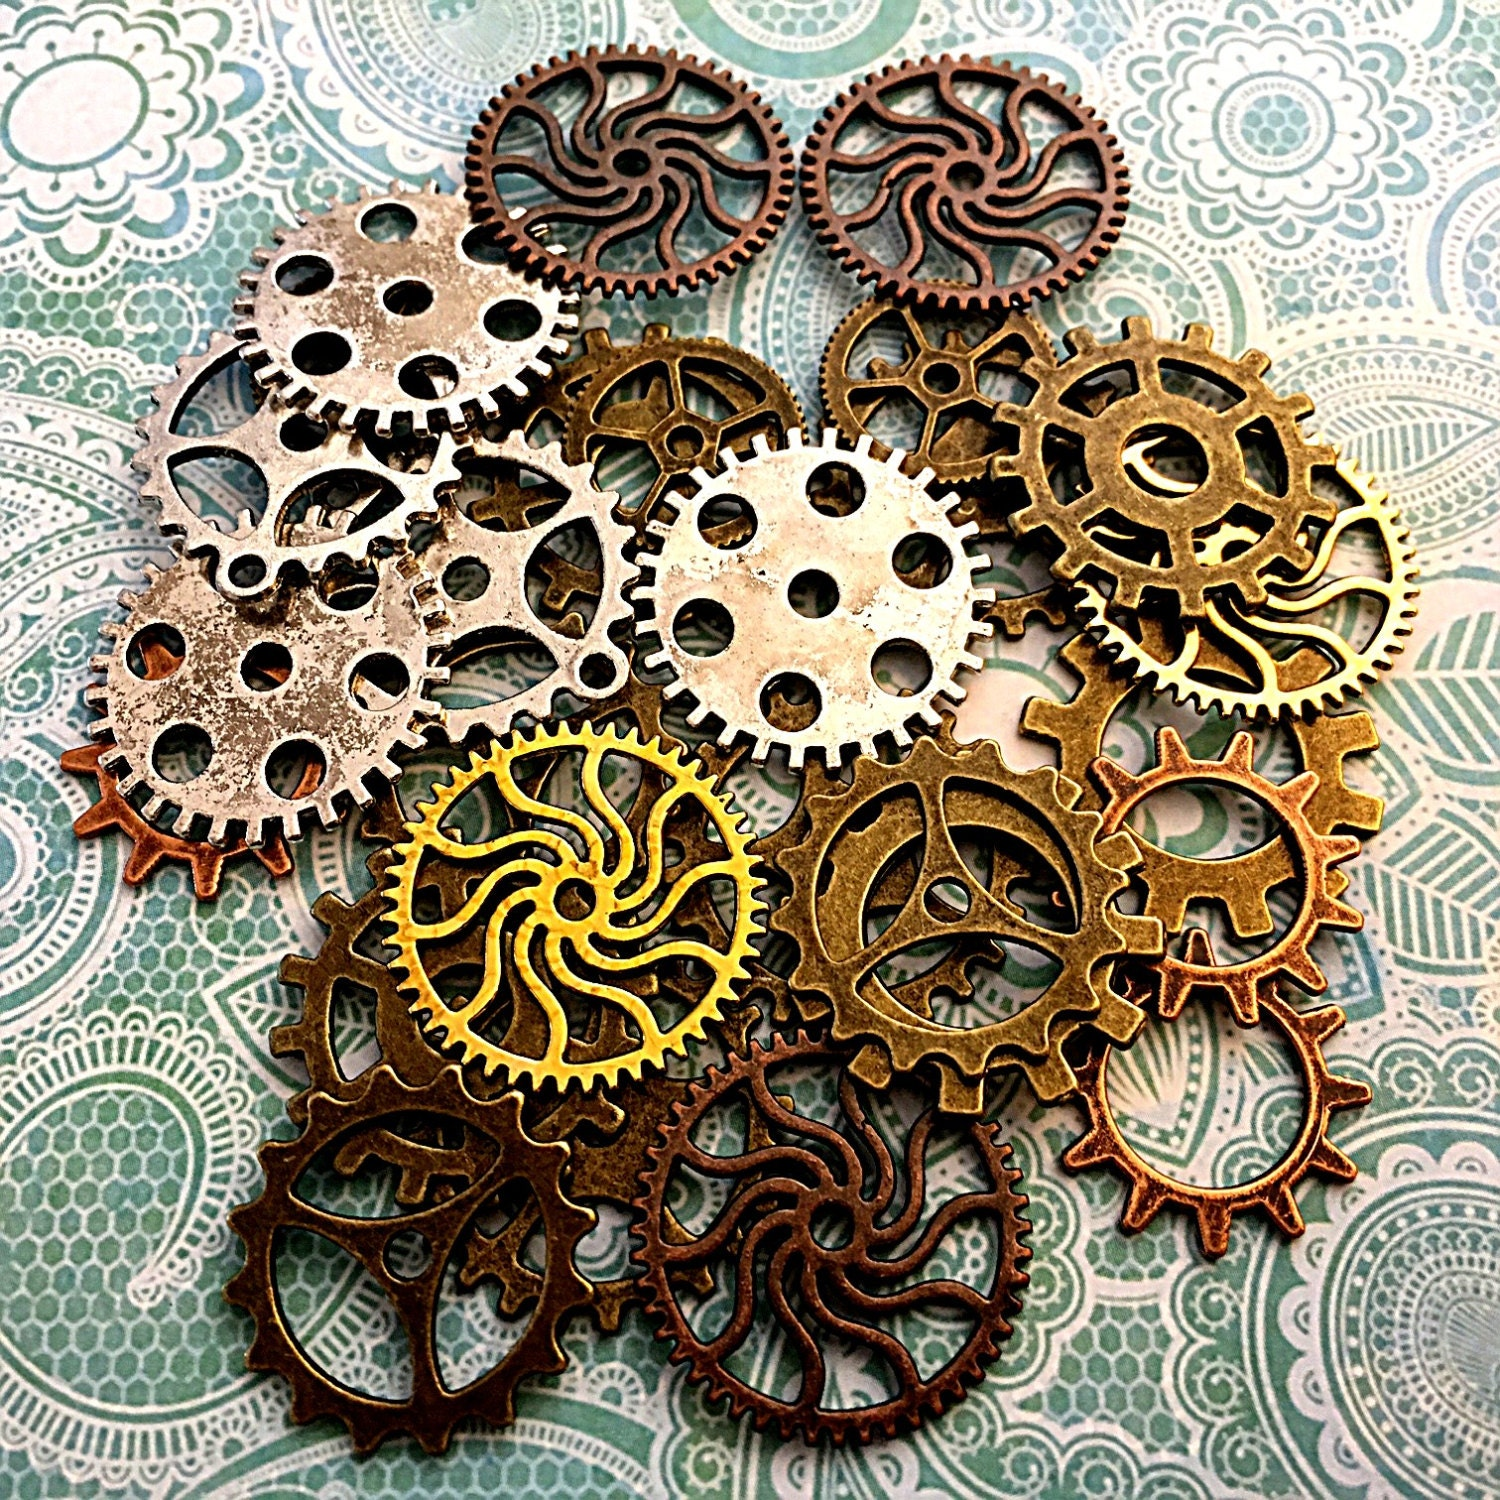 Is Steampunk Jewelry A Craft Or An Art: 80 Steampunk Gears Cogs Buttons Watch Parts Altered Art Brass